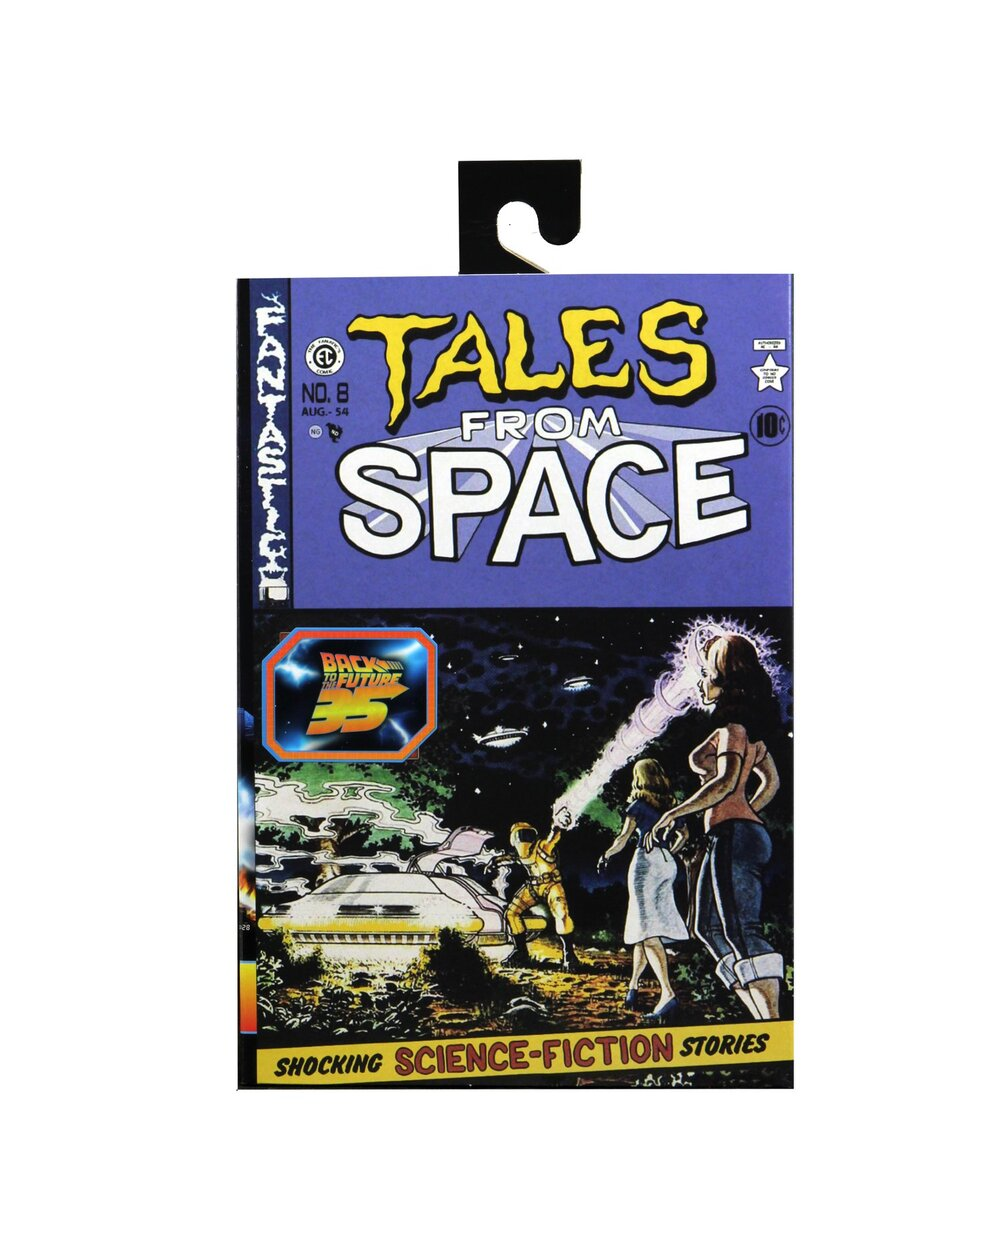 NECA-Tales-From-Space-Marty-Packaging-001.jpg